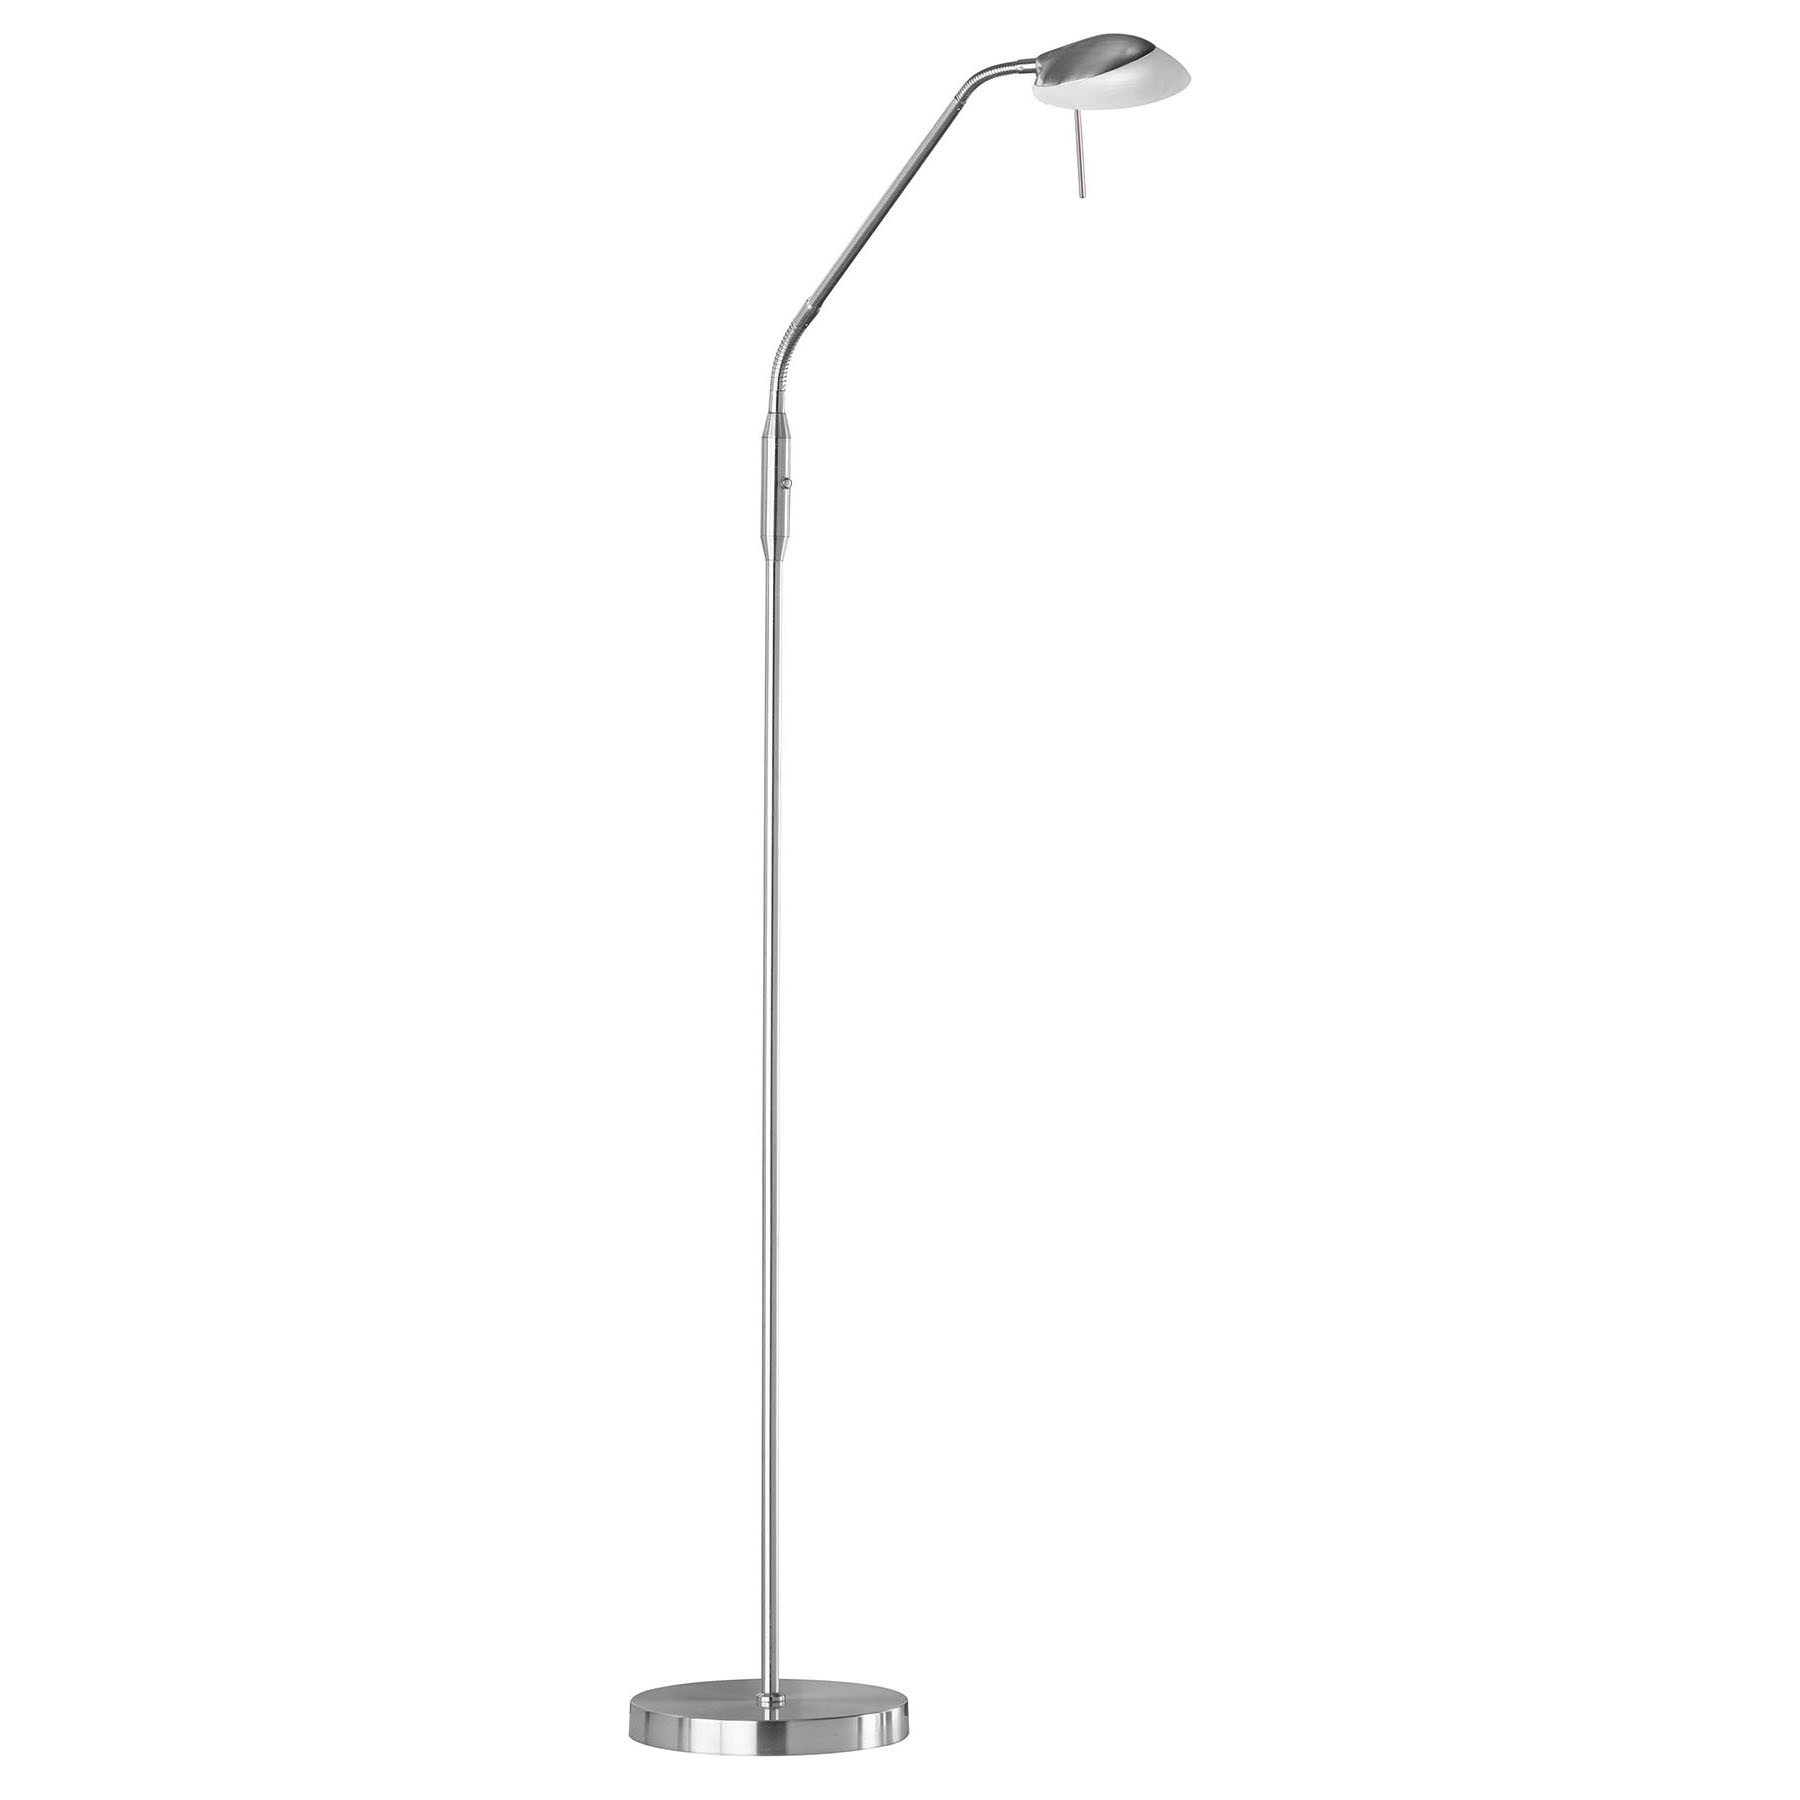 Lampadaire LED Pool TW, à 1 lampe, nickel